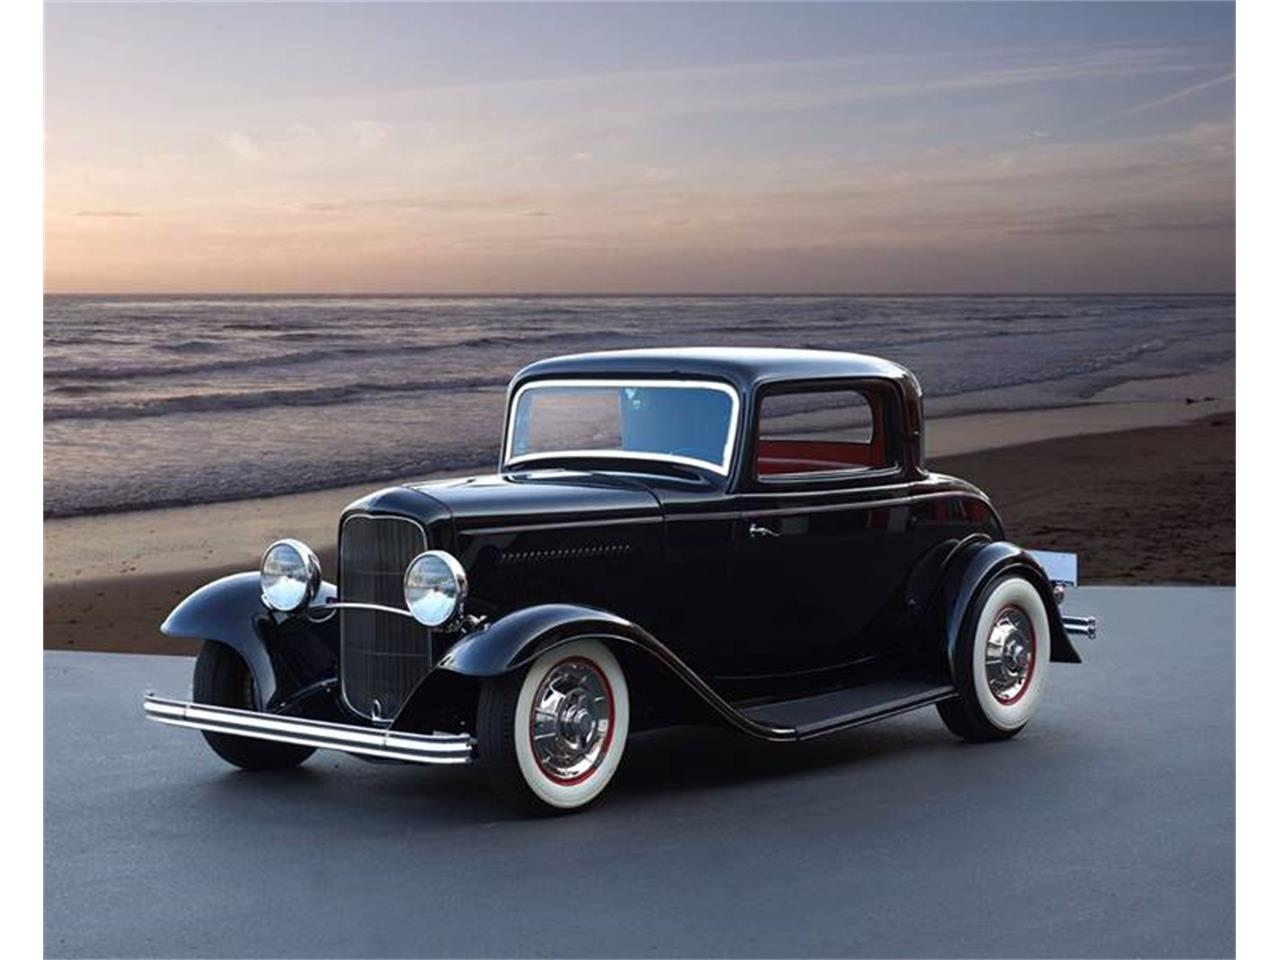 Large Picture of Classic 1932 3-Window Coupe located in Brea California Auction Vehicle - LB89